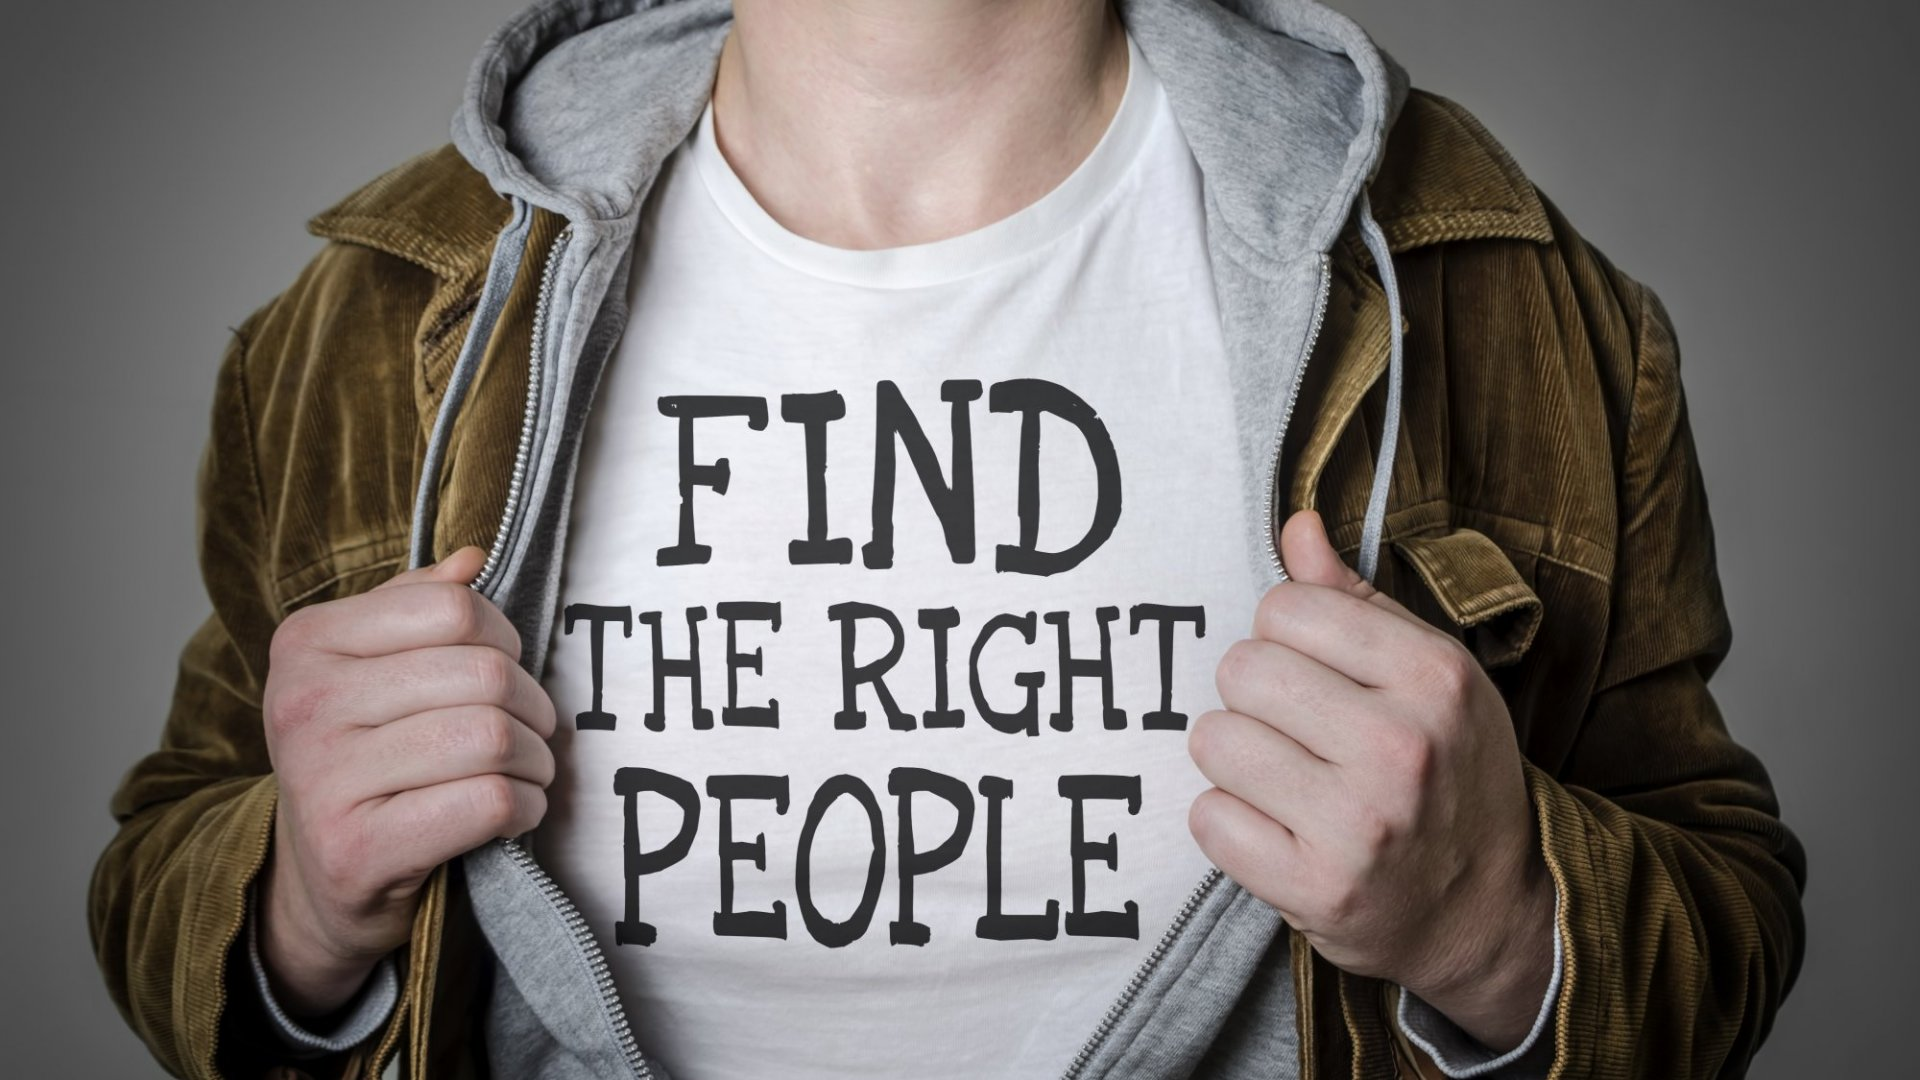 """man with """"Find The Right People"""" shirt on"""